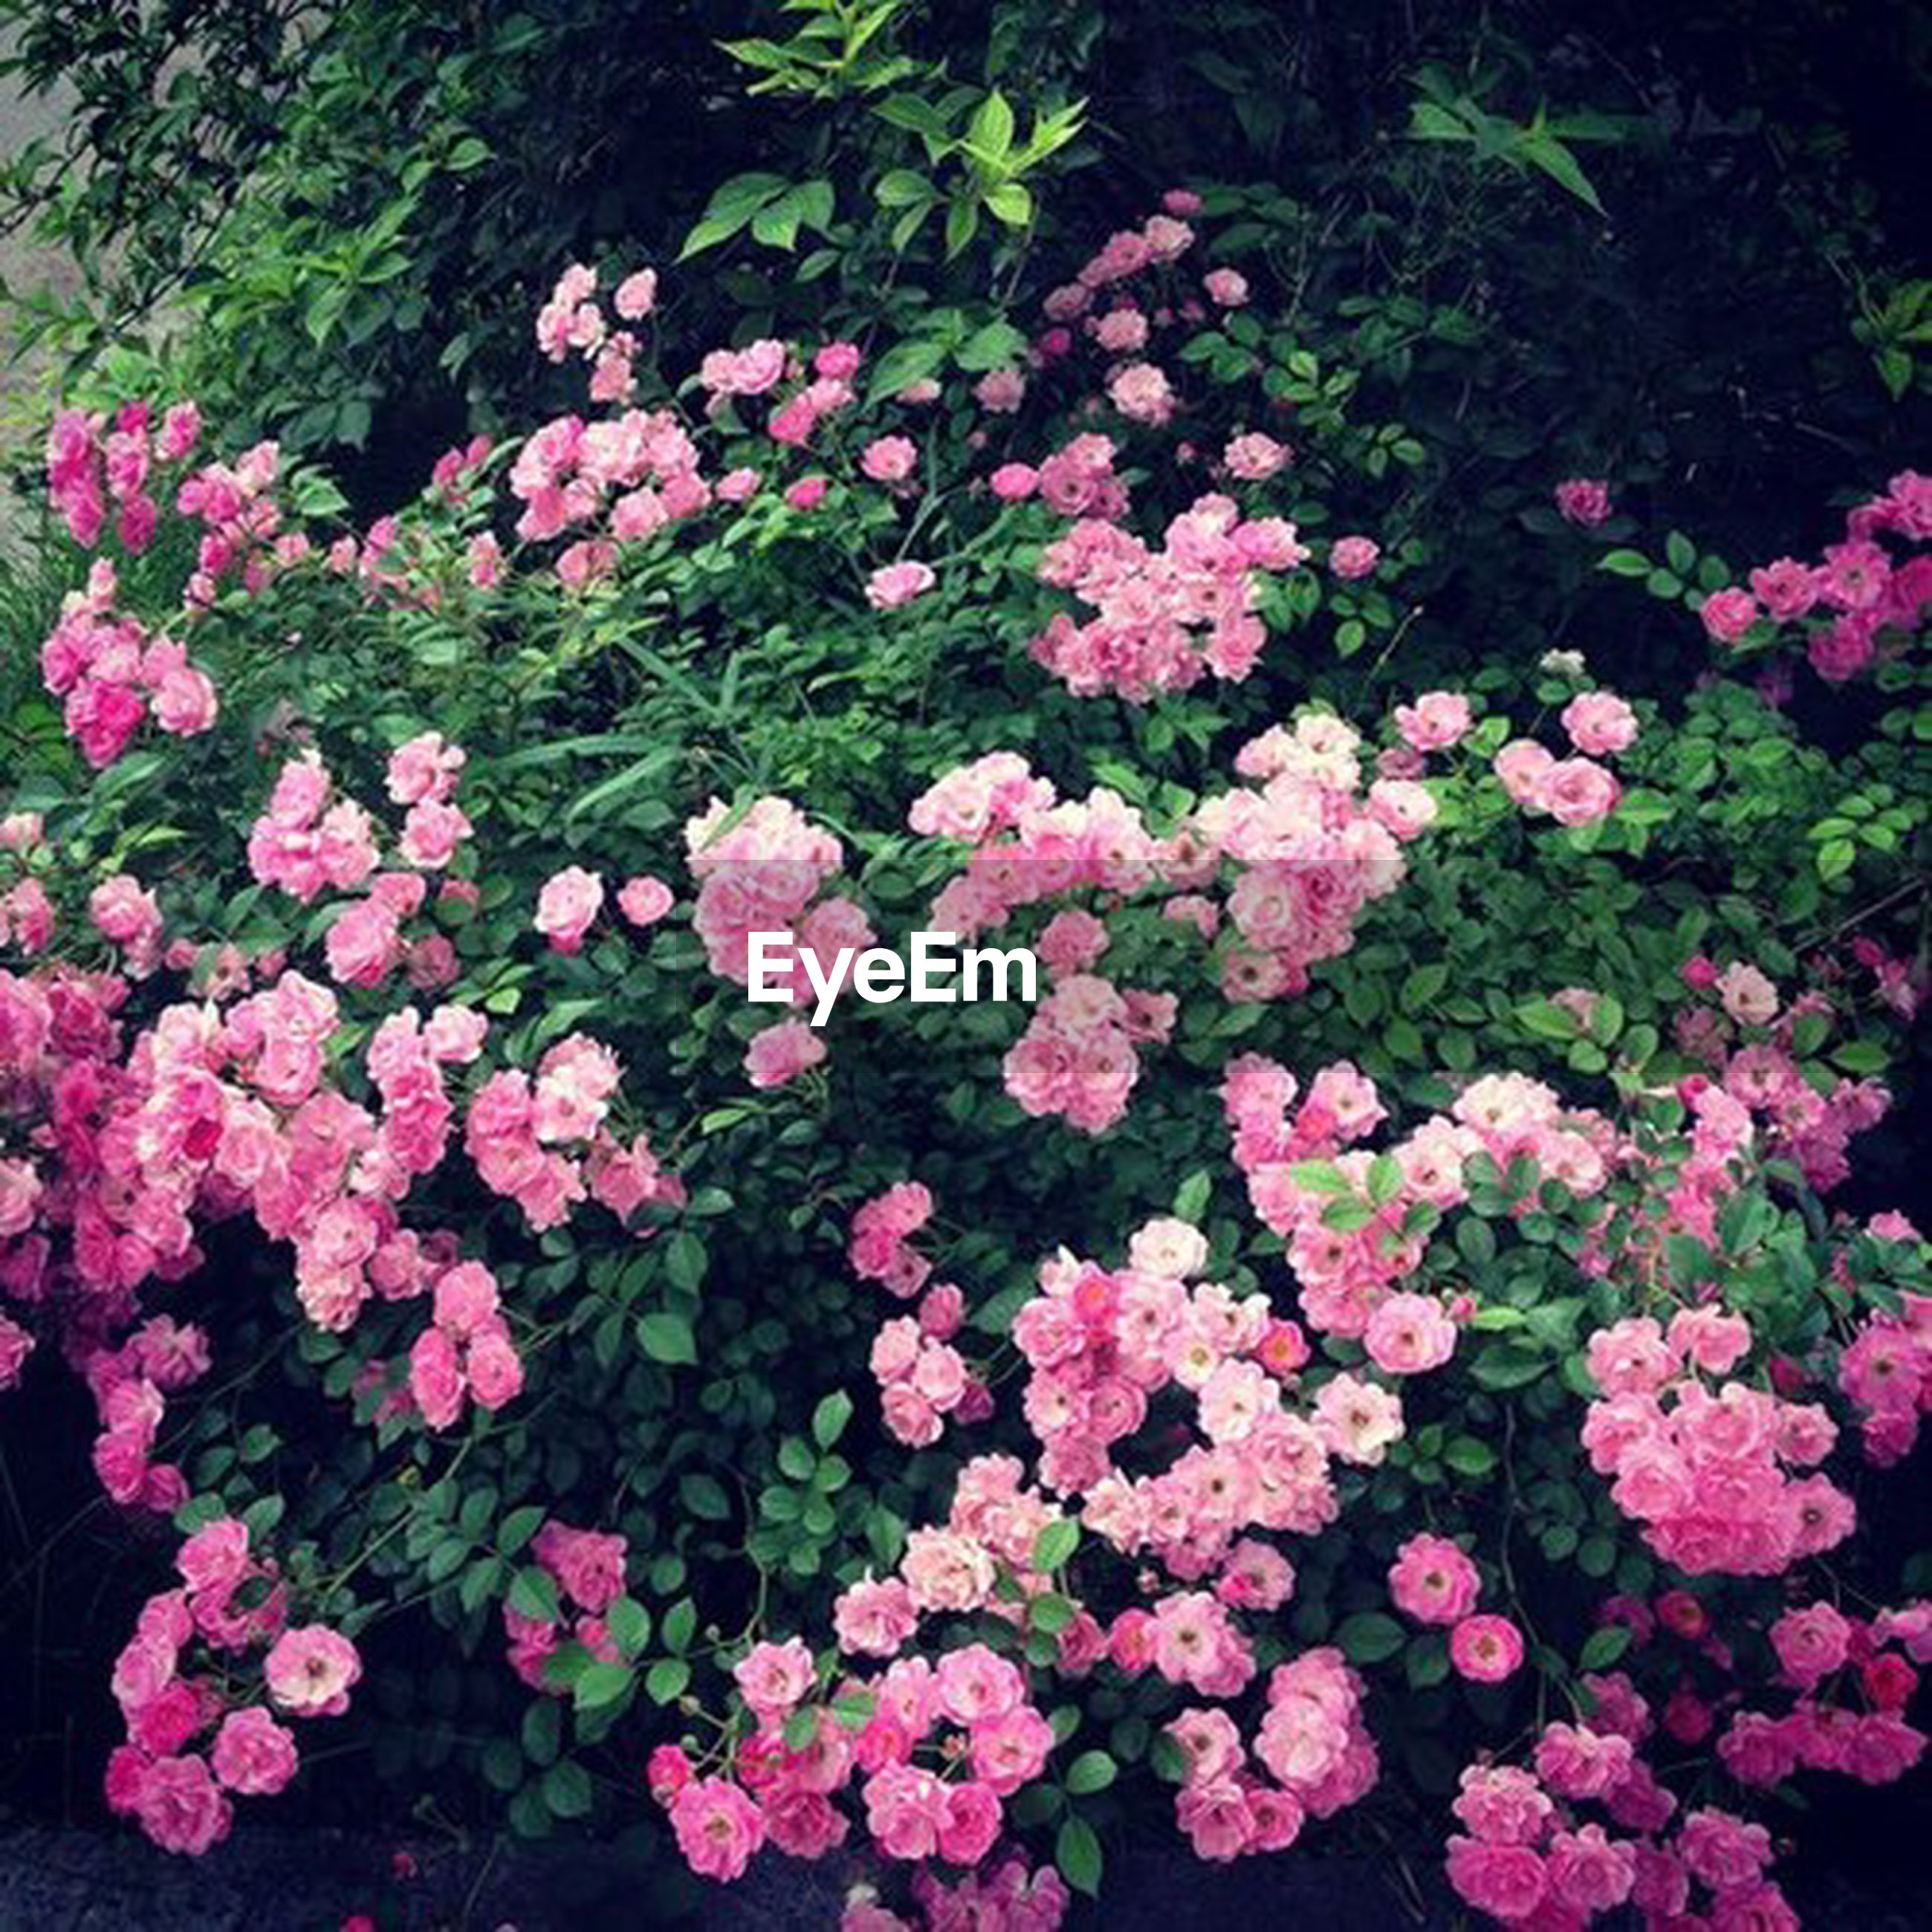 flower, freshness, growth, beauty in nature, pink color, petal, fragility, nature, blooming, plant, park - man made space, in bloom, flower head, high angle view, pink, blossom, outdoors, day, leaf, no people